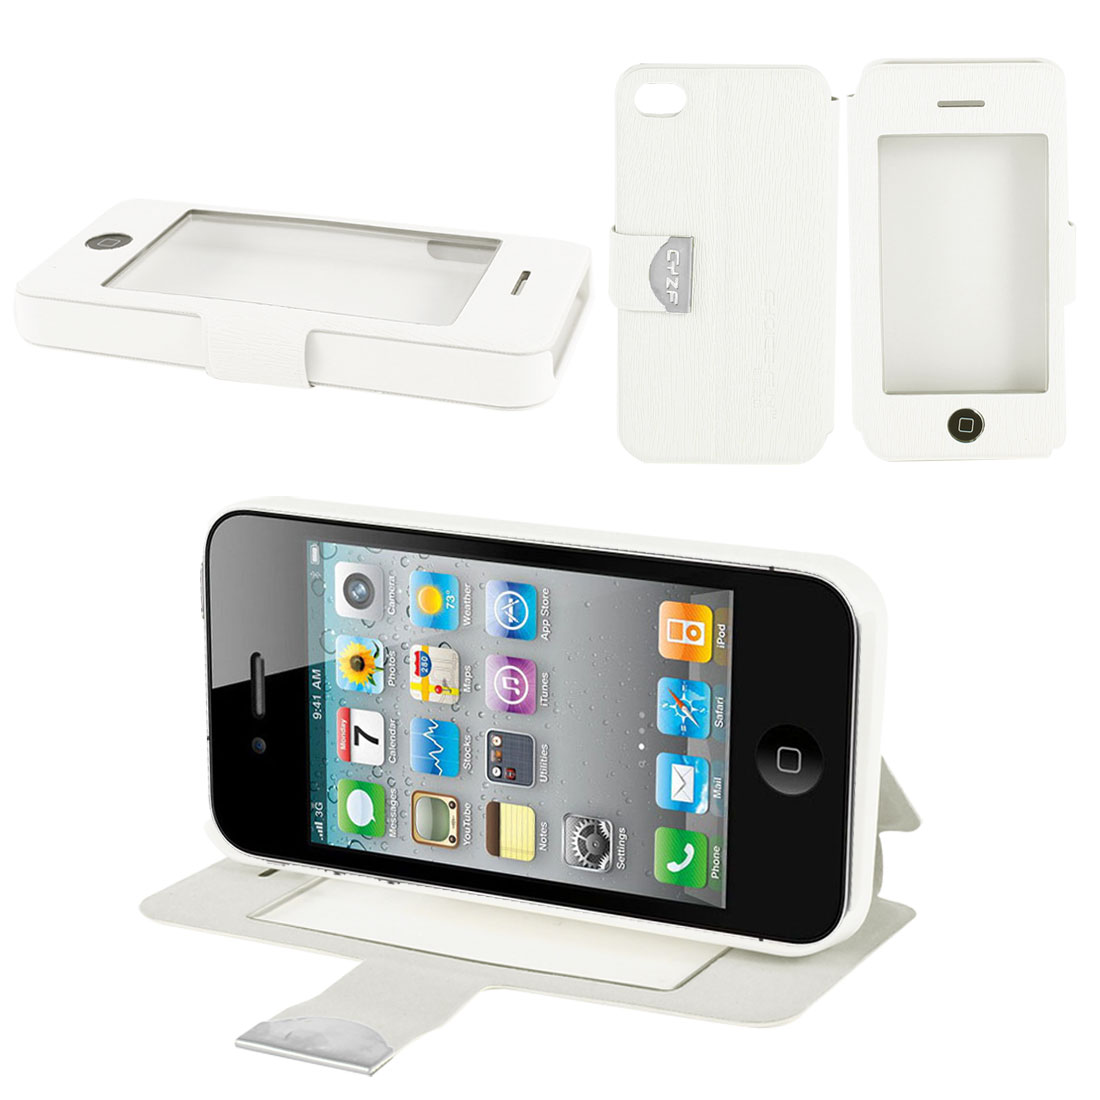 White PU Leather Magnetic Flip View Stand Case Cover for Apple iPhone 4 4S 4G